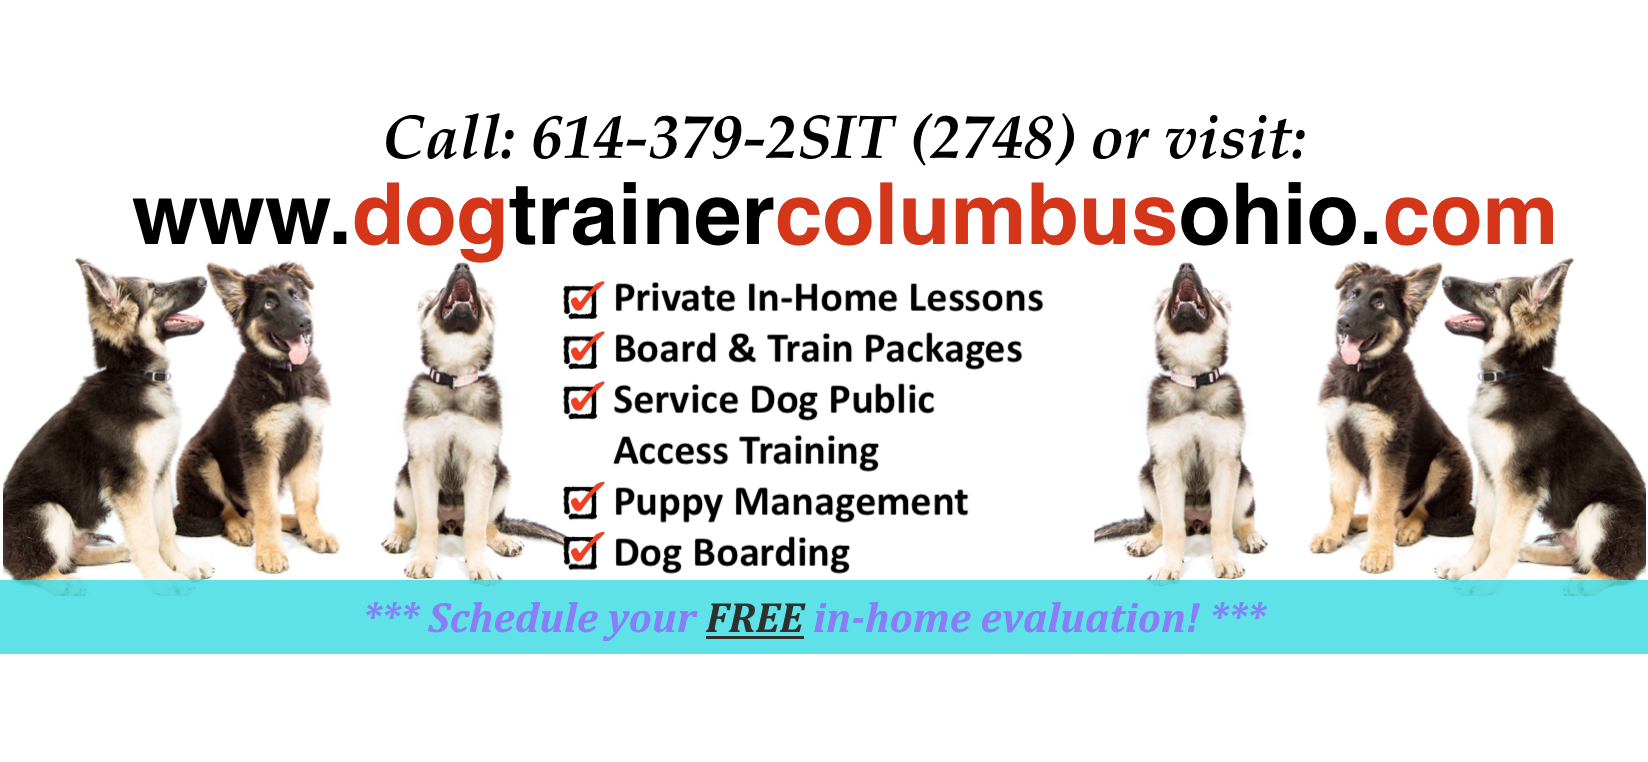 Dog Training Columbus Ohio Provides World Class Dog Obedience And Dog Behaviour Training Throughout Columbus New Alba Dog Training Obedience Dog Training Dogs